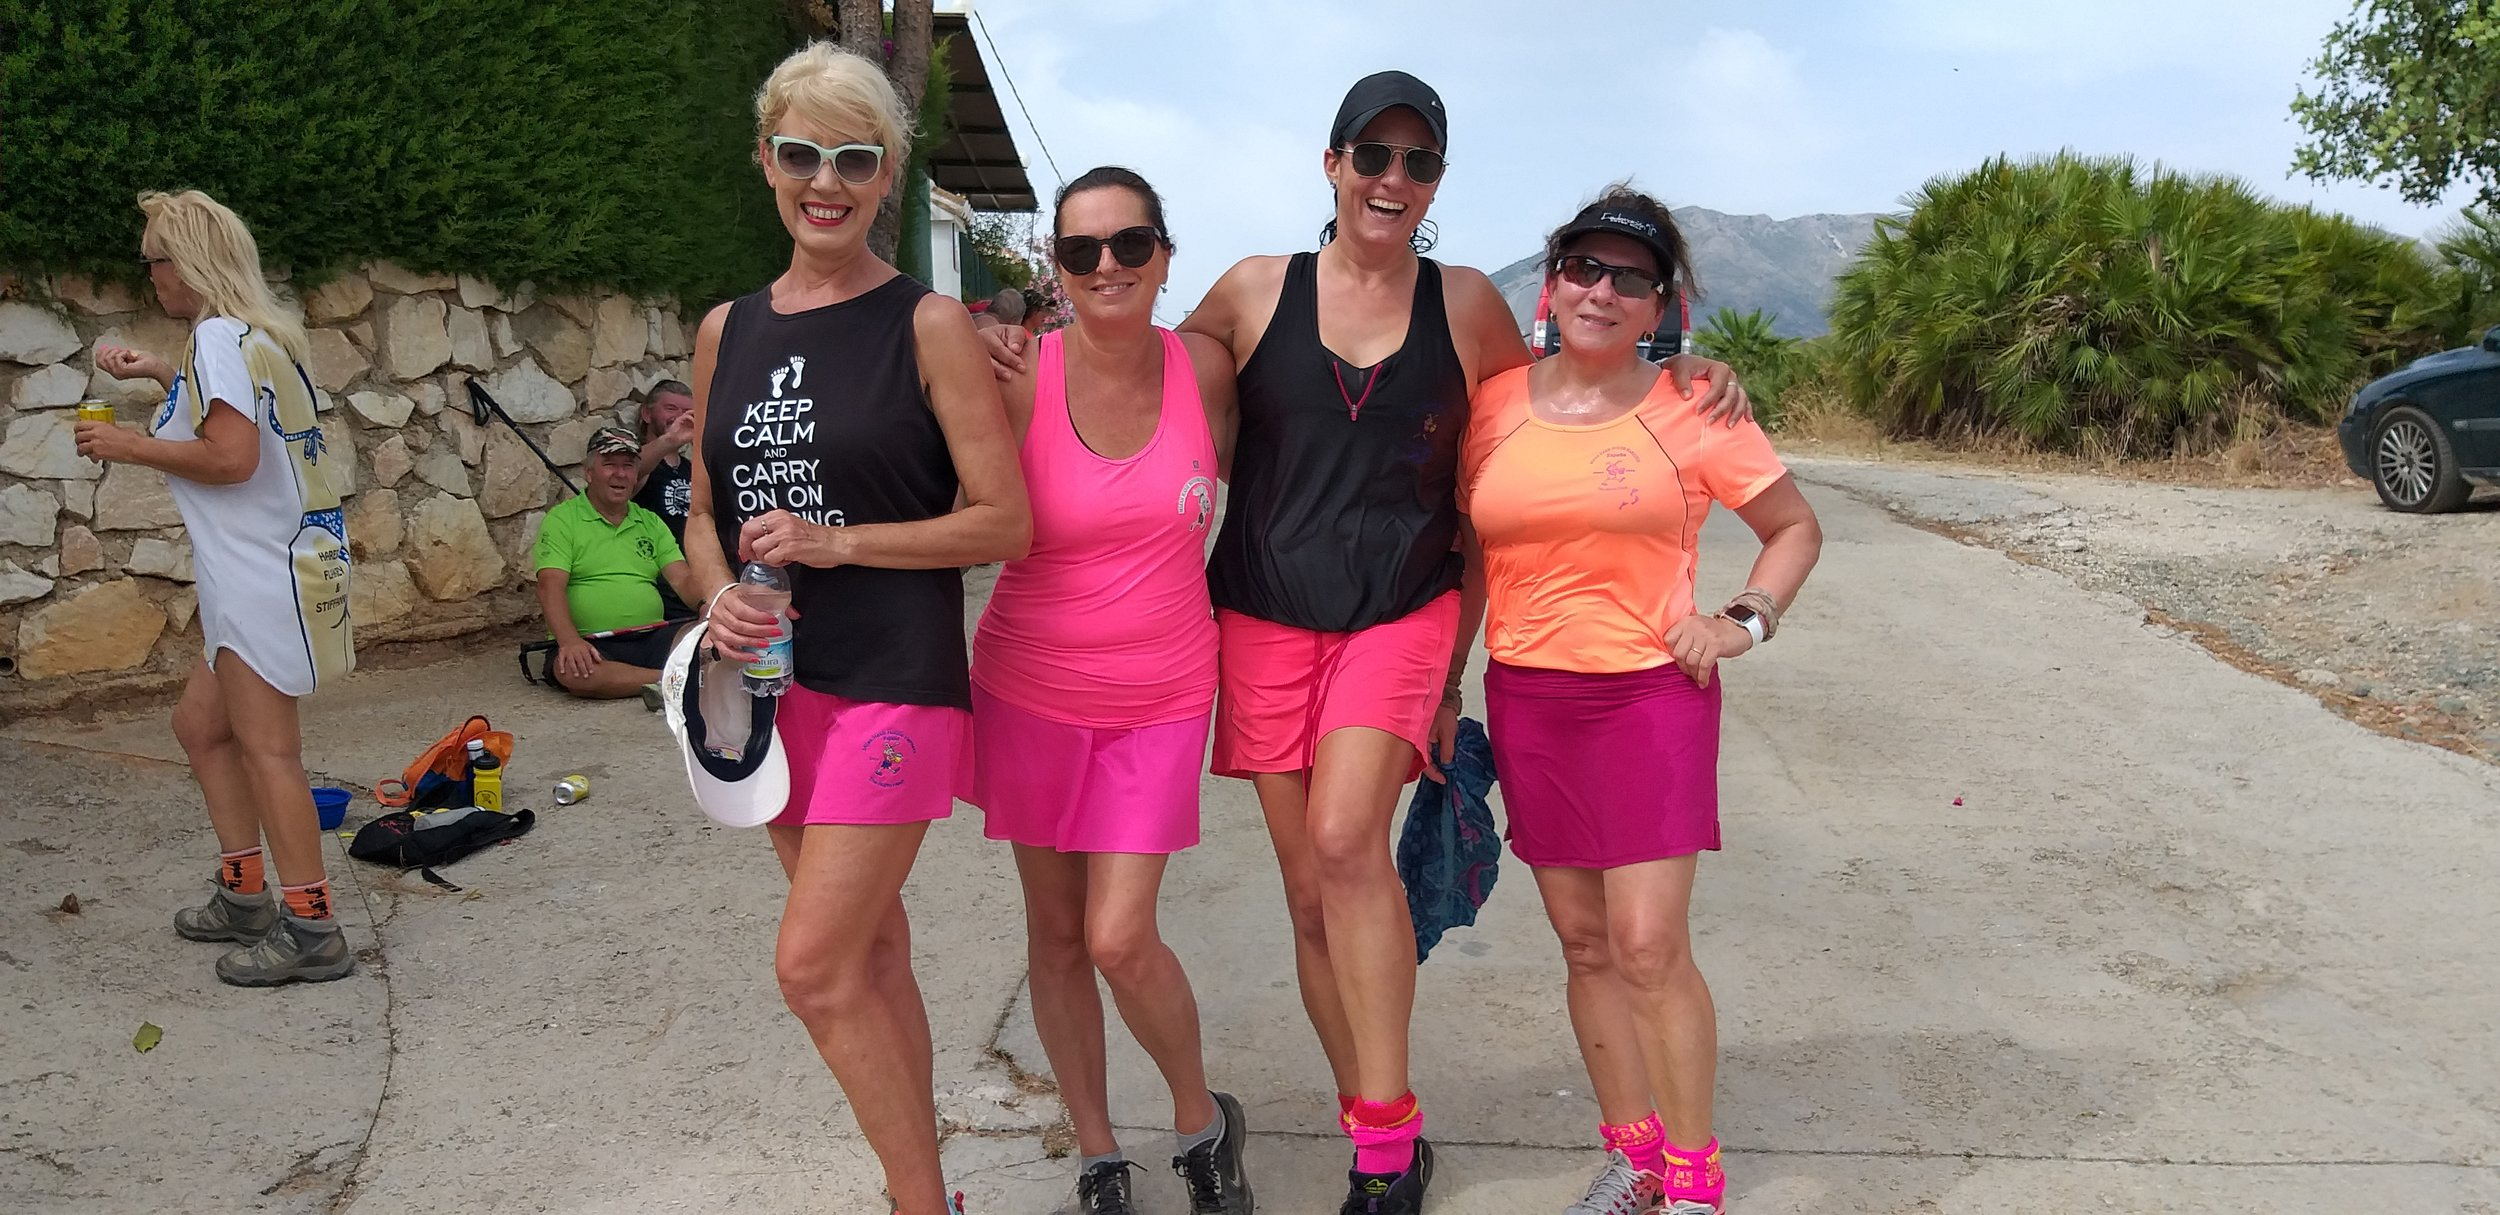 Mijas H3 - Hash Flash Golden Cascade - Run 1647  - 07 Jul 2019 - Photo 5.jpg